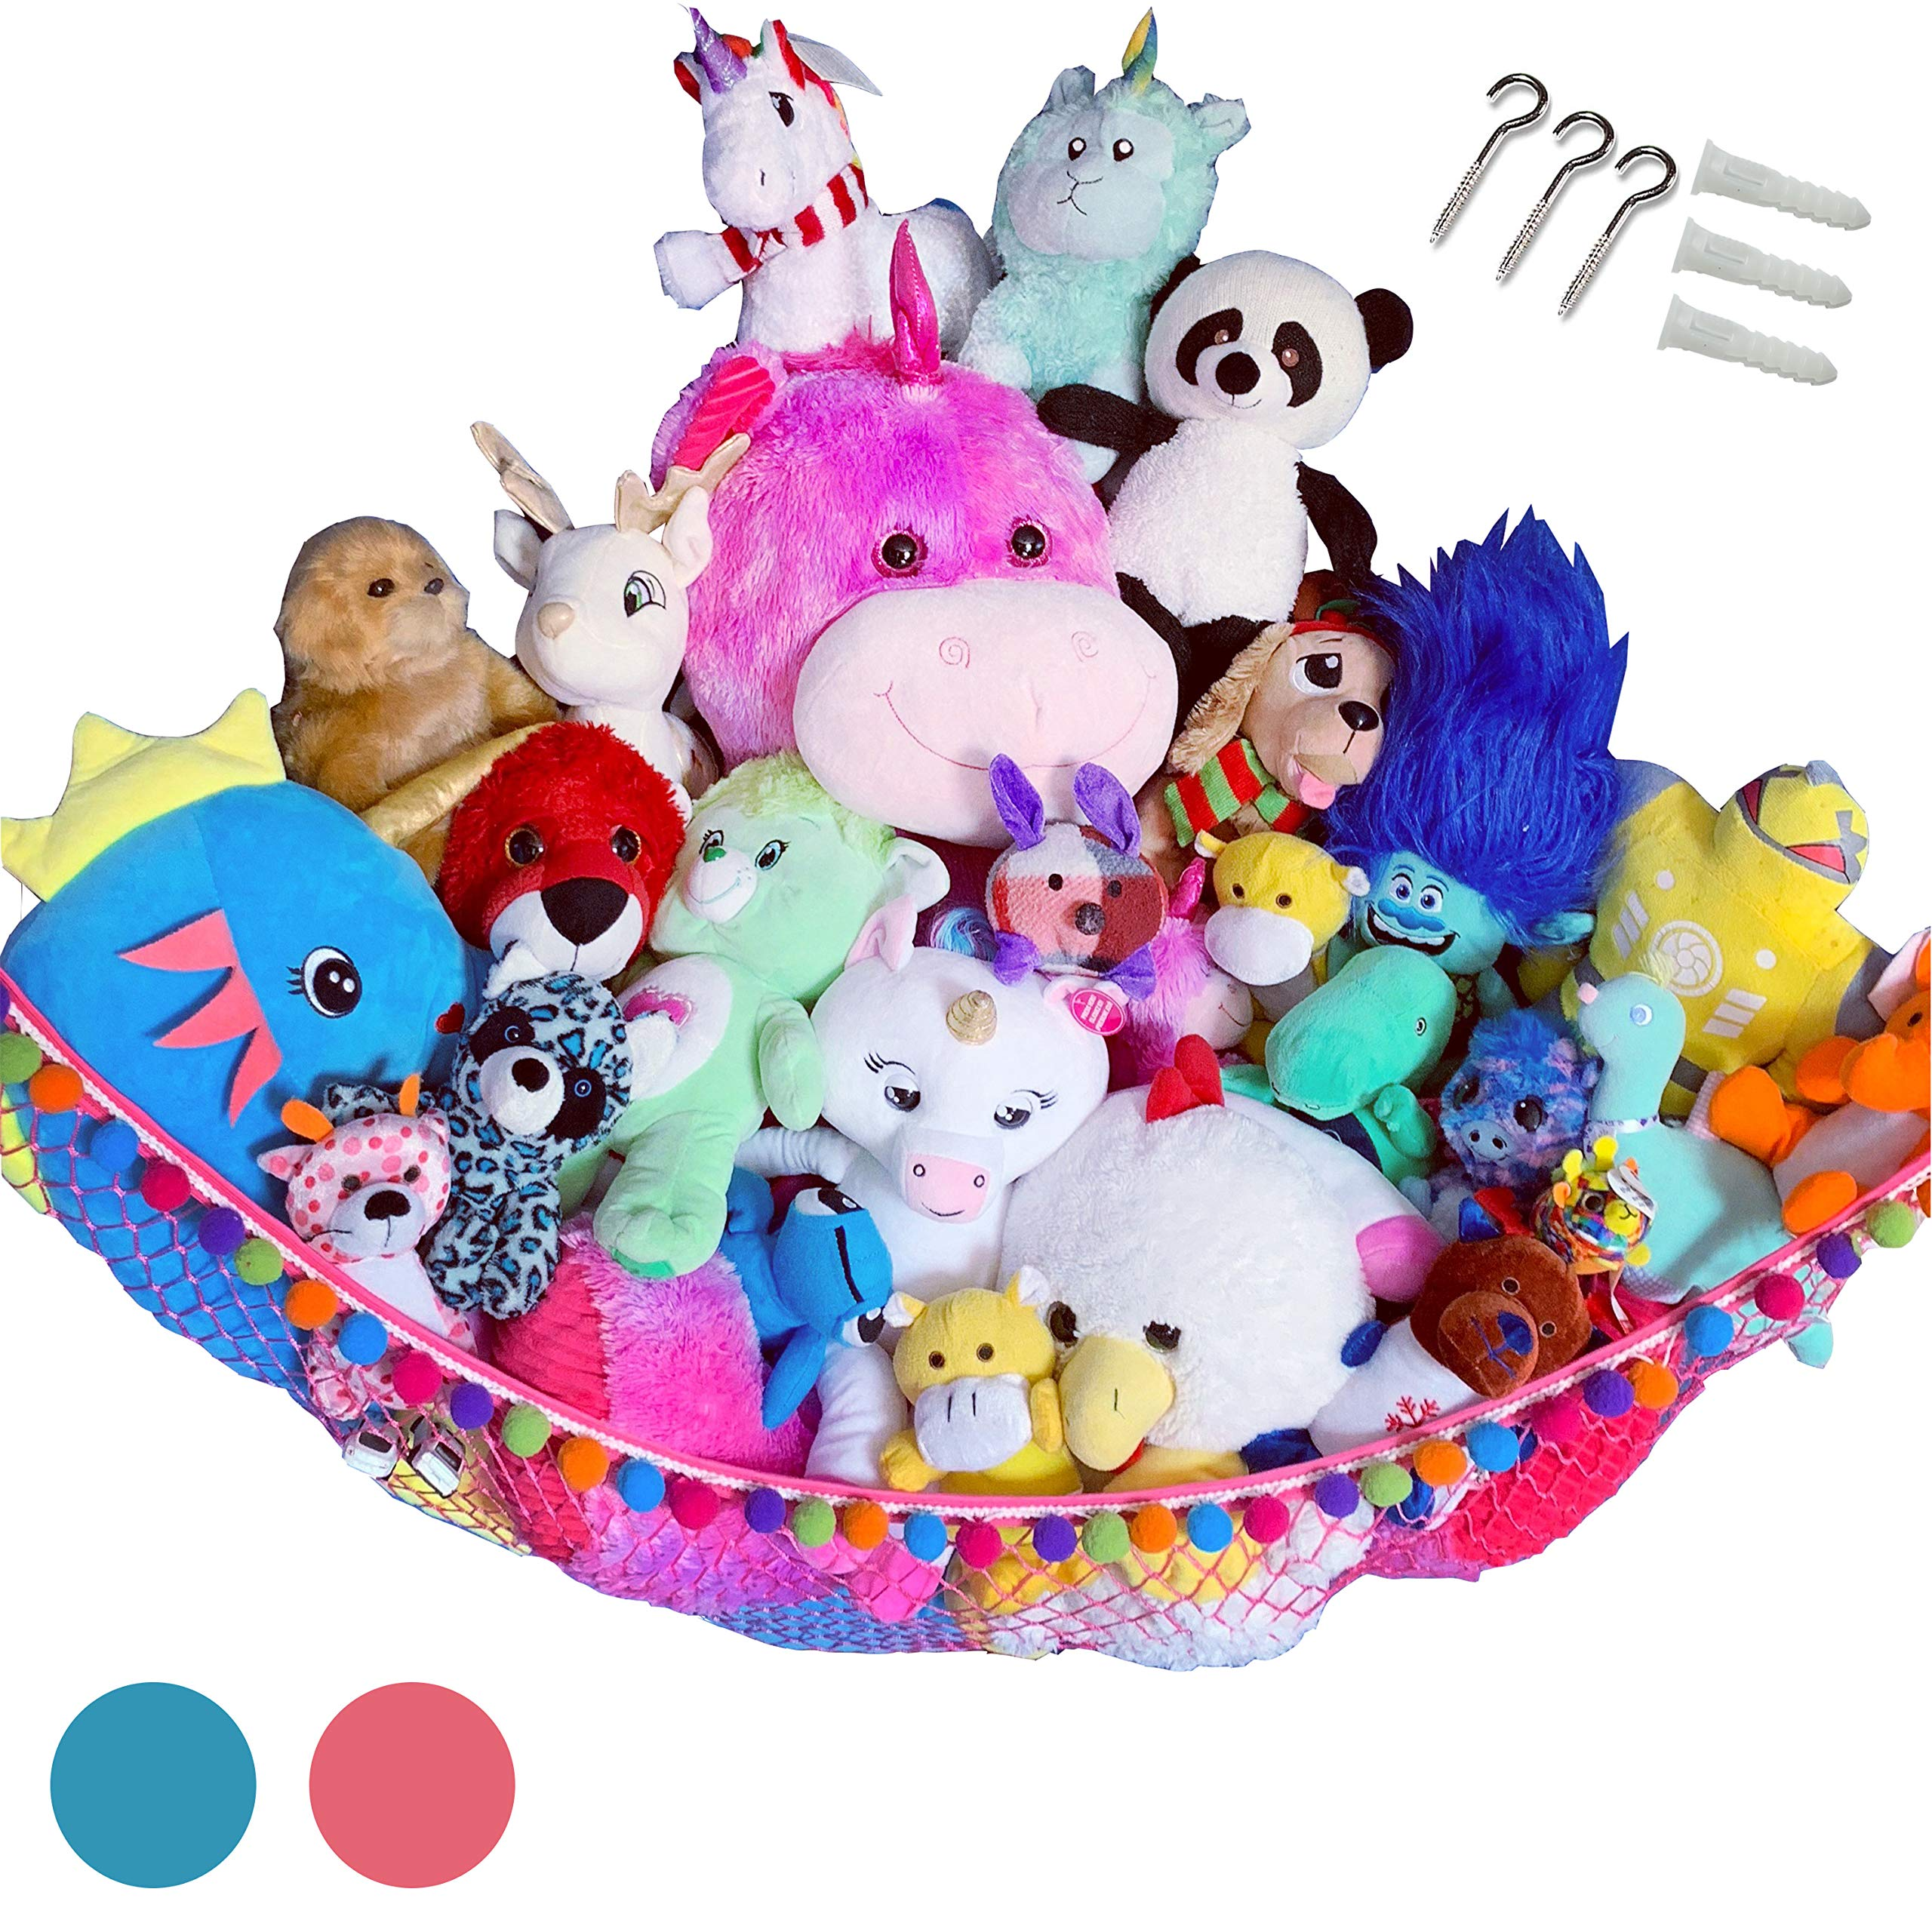 HOME4 Plush Animal Teddy Bear Hanging Storage Toys Hammock Net With Fun Poms Poms - Organize Small, Large, Giant Stuffed Toys Balls Great Gift for Boys, Girls Instead of Bins Chest - Pink